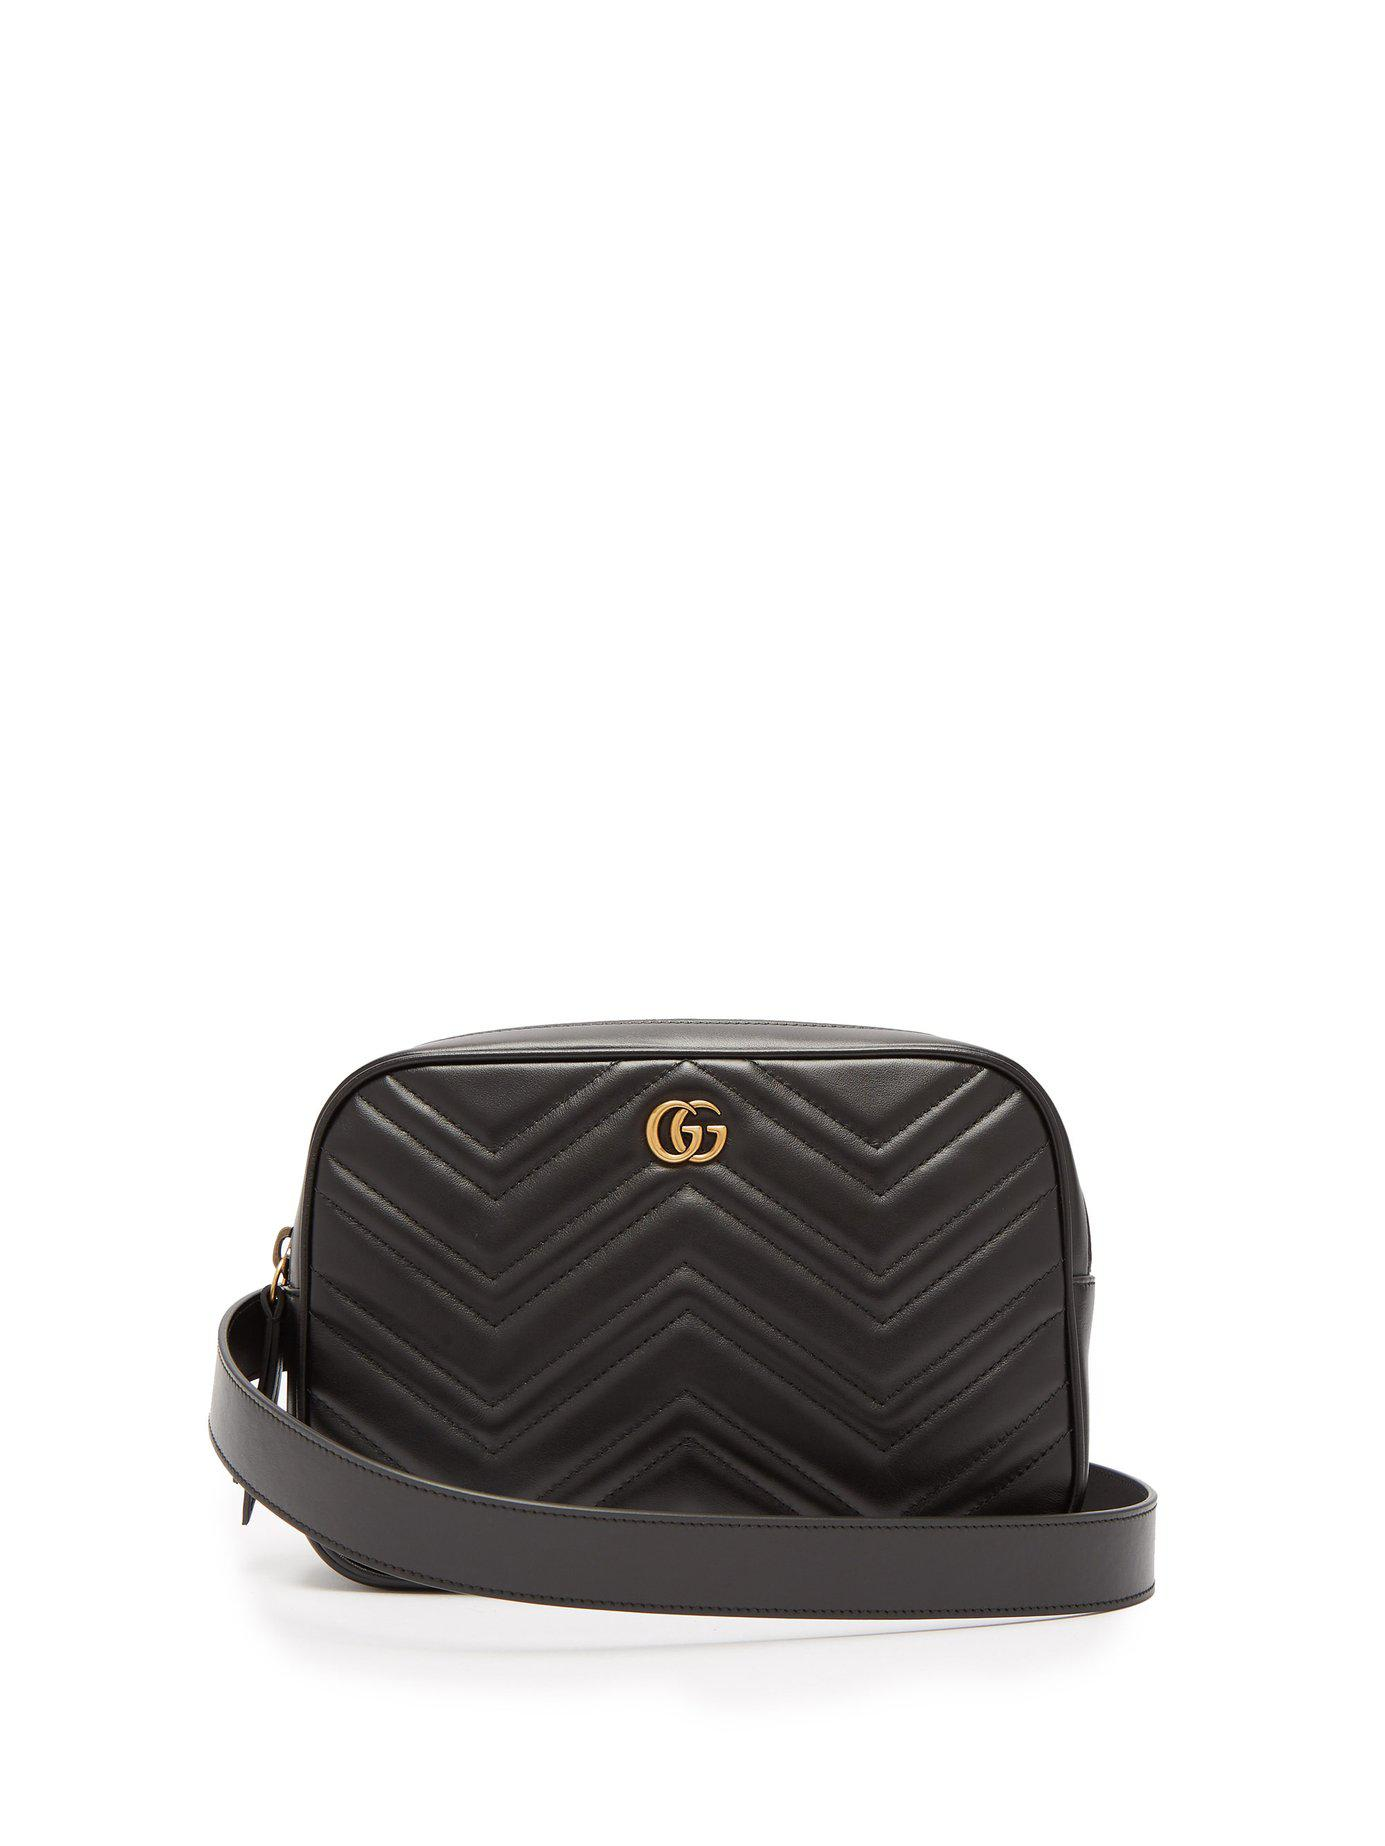 49ca708b4d94b Lyst - Gucci Gg Marmont Quilted Leather Belt Bag in Black